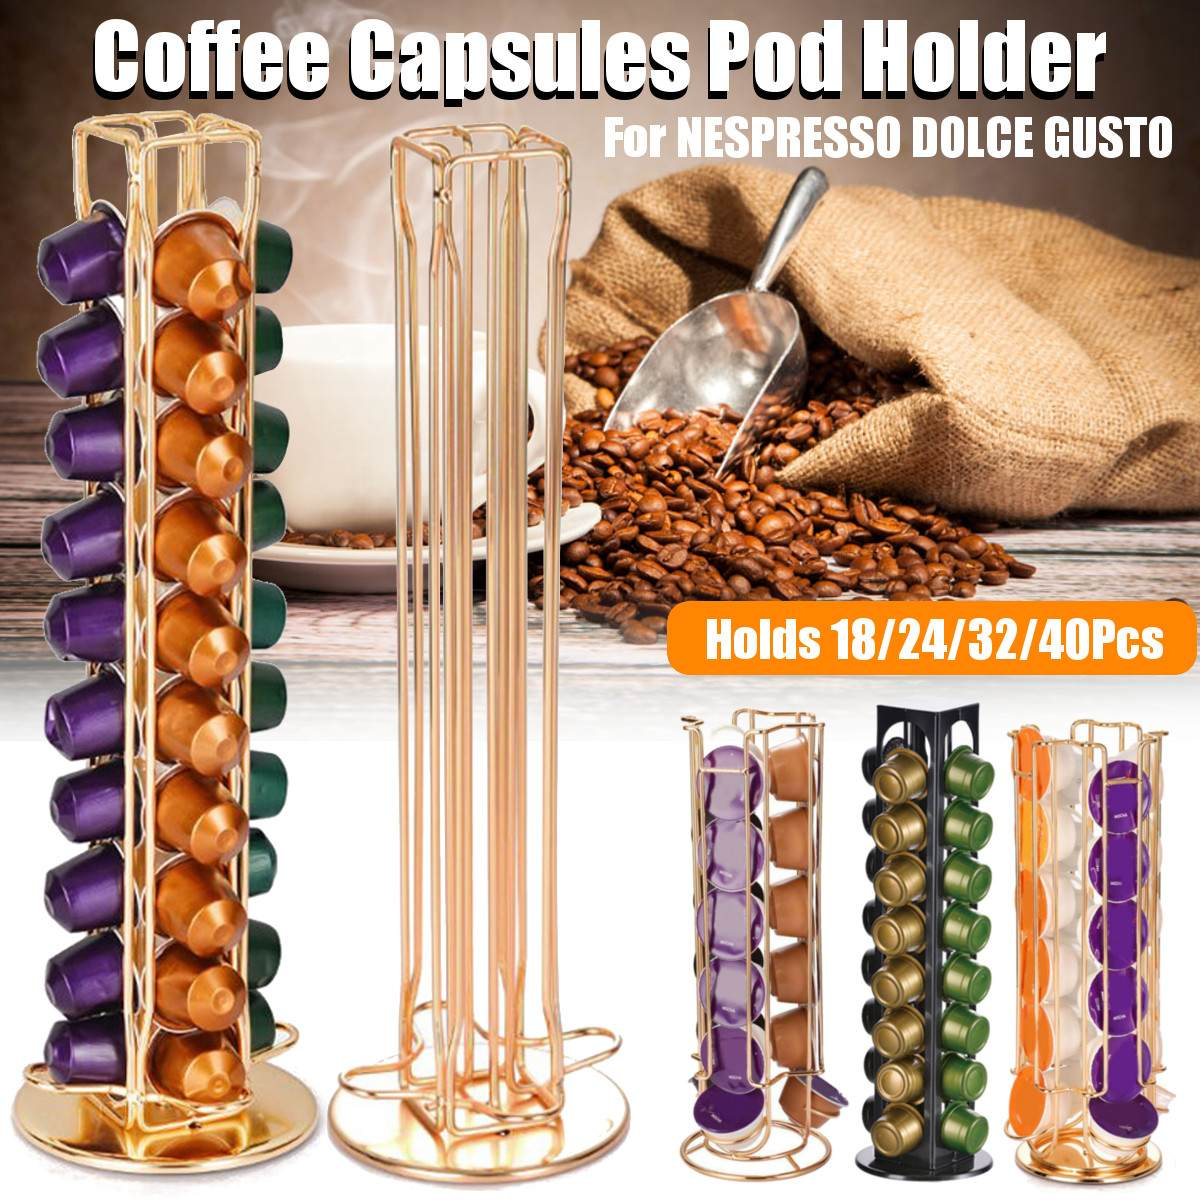 18/24/32/40 Cup Metal Coffee Pods Holder Iron Chrome Plating Stand Coffee Capsule Storage Rack Dolce Gusto Capsule Free Shipping